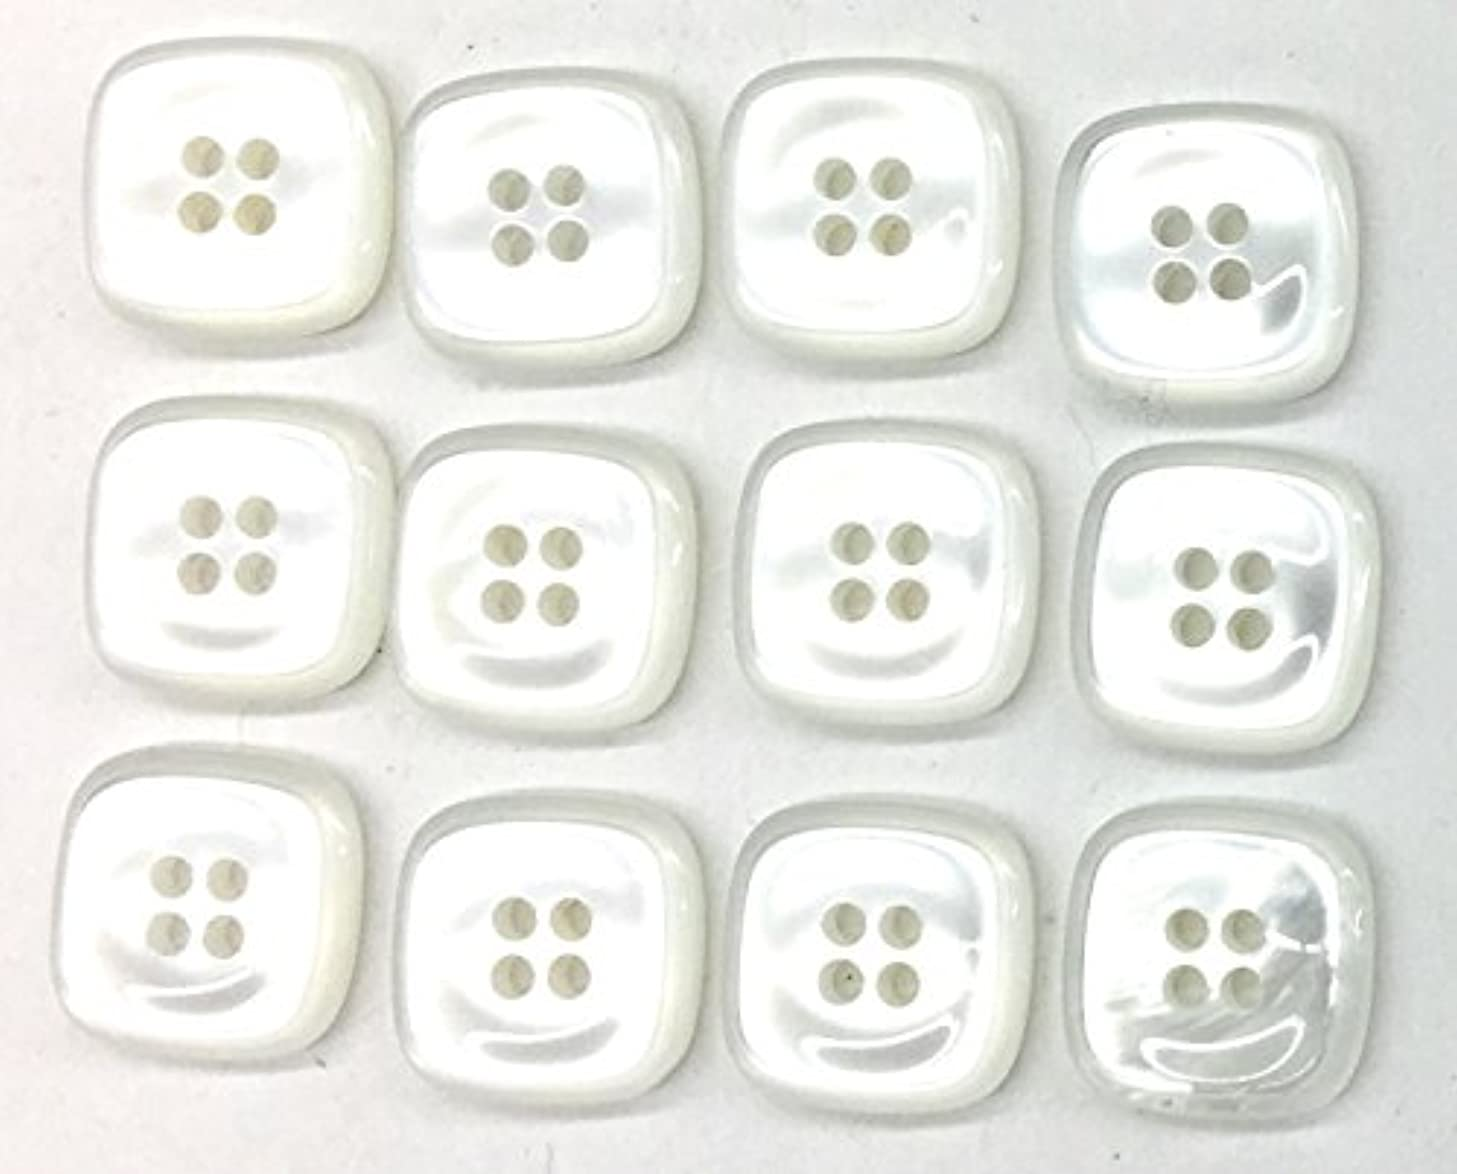 12 White Buttons 4 Hole Square Style Blouse Buttons 1/2'- 13mm or 3/8'' 11mm Shirt Buttons for Dress, Blouses, Shirts (3/8' -11mm)